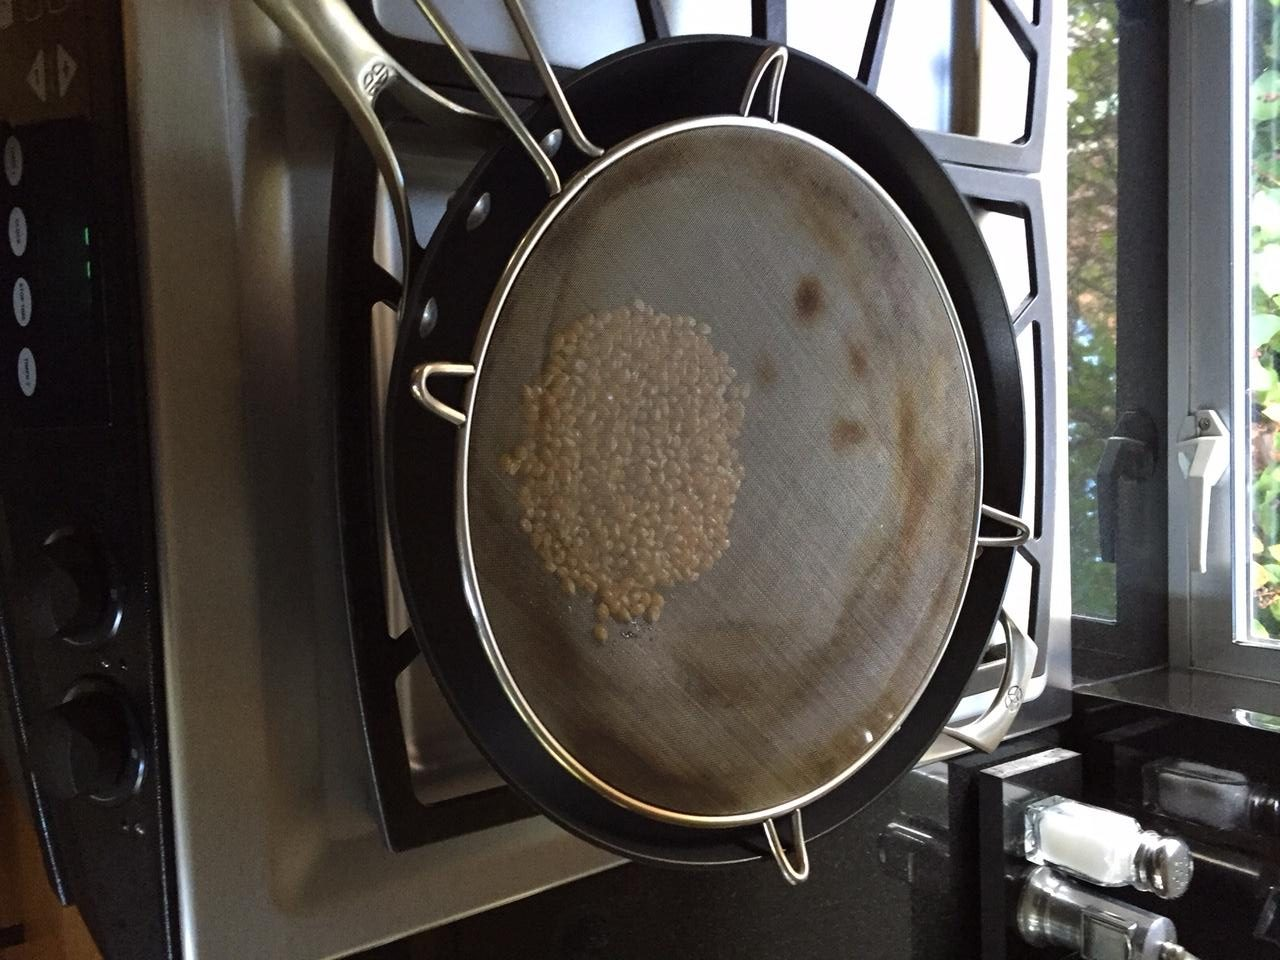 Popcorn in a Wok Splatter Screen